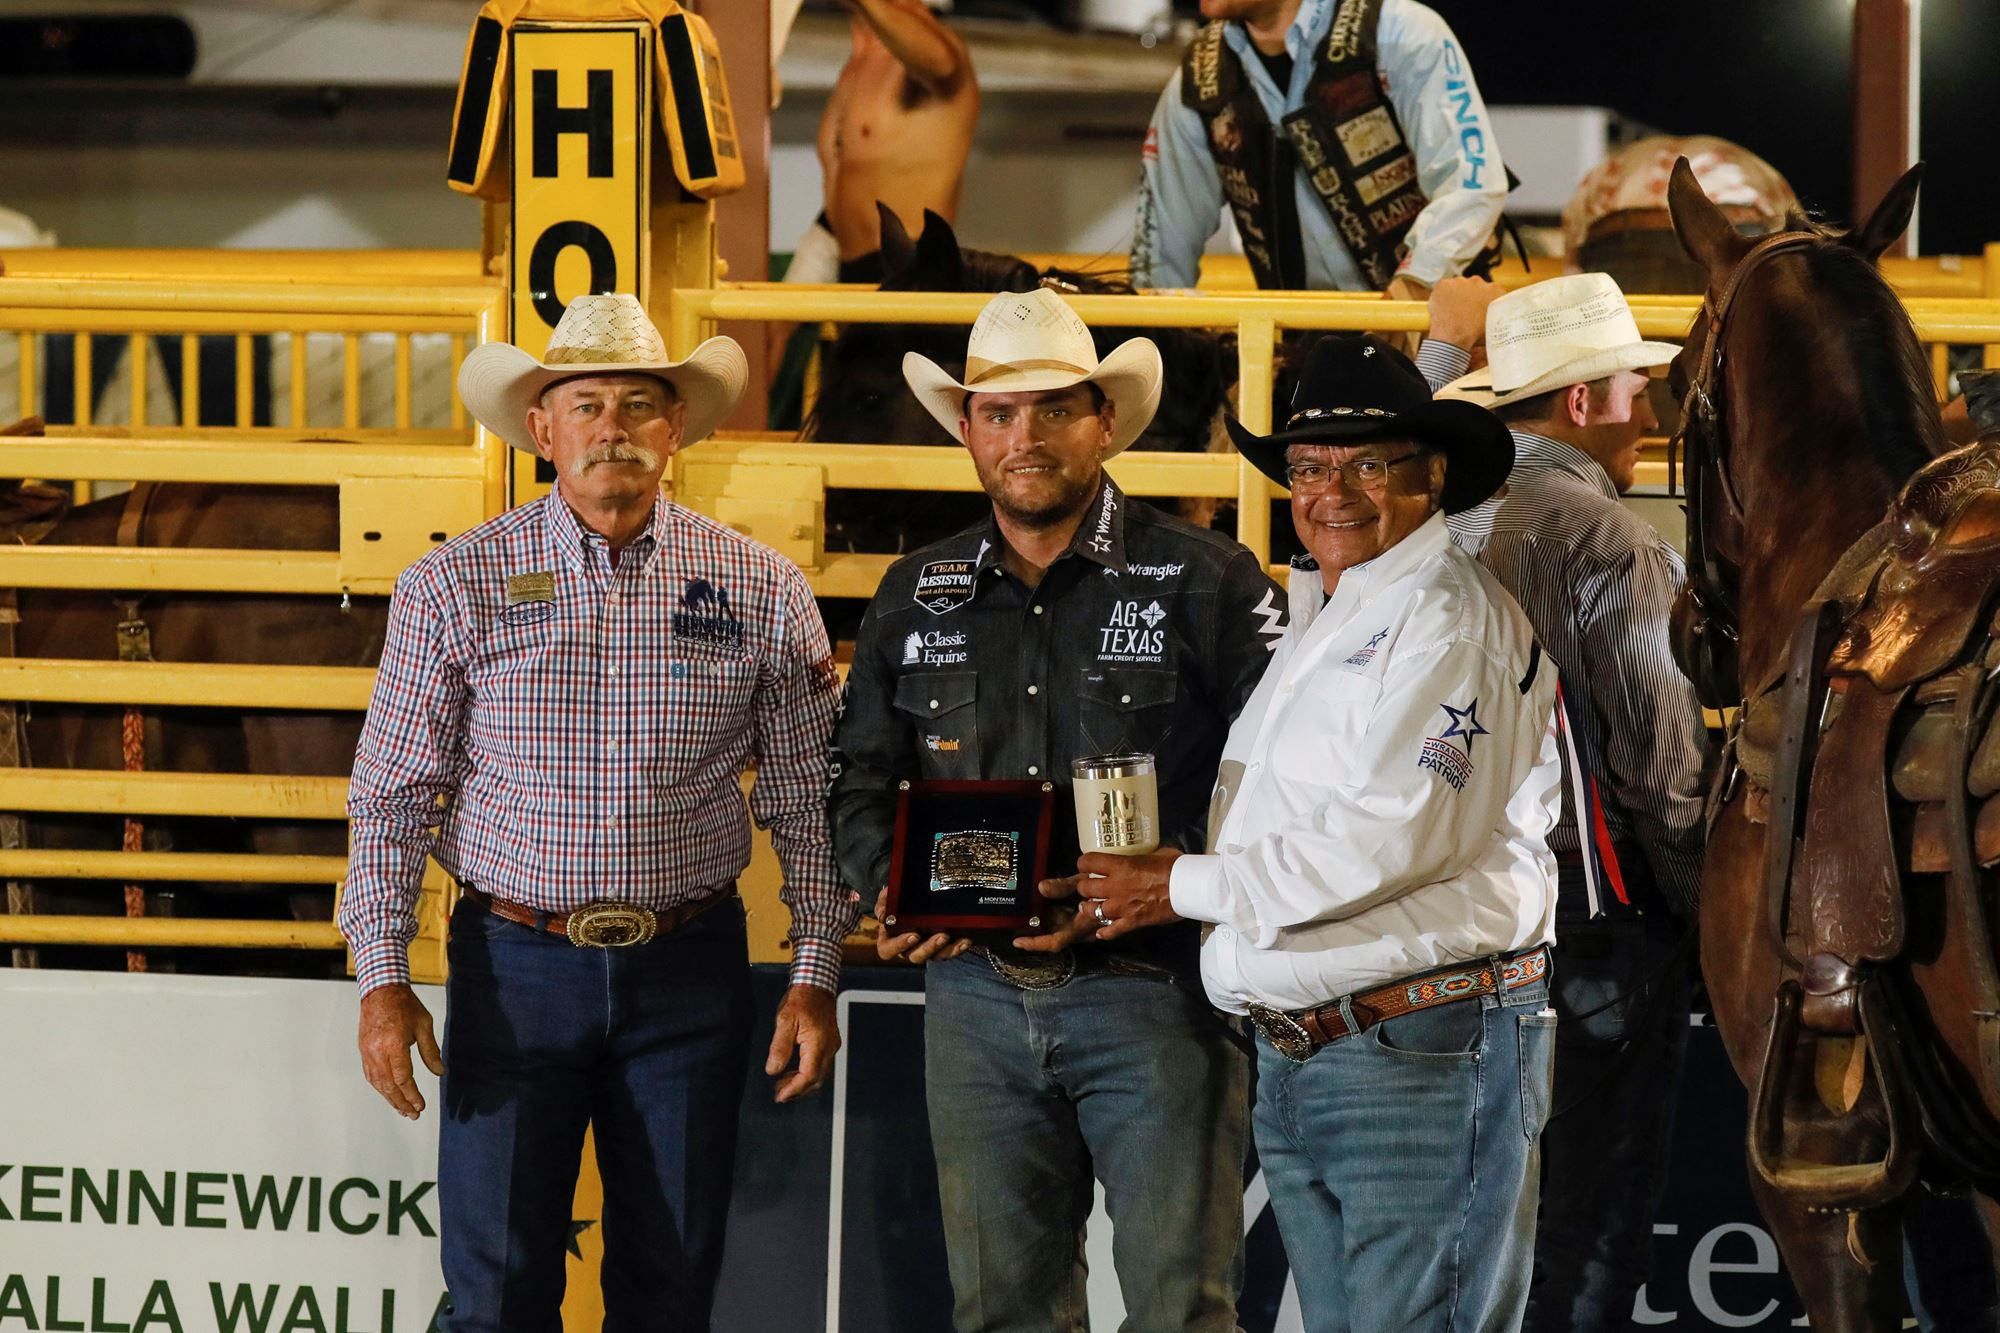 Jace Melvin receiving award for Steer Wrestling